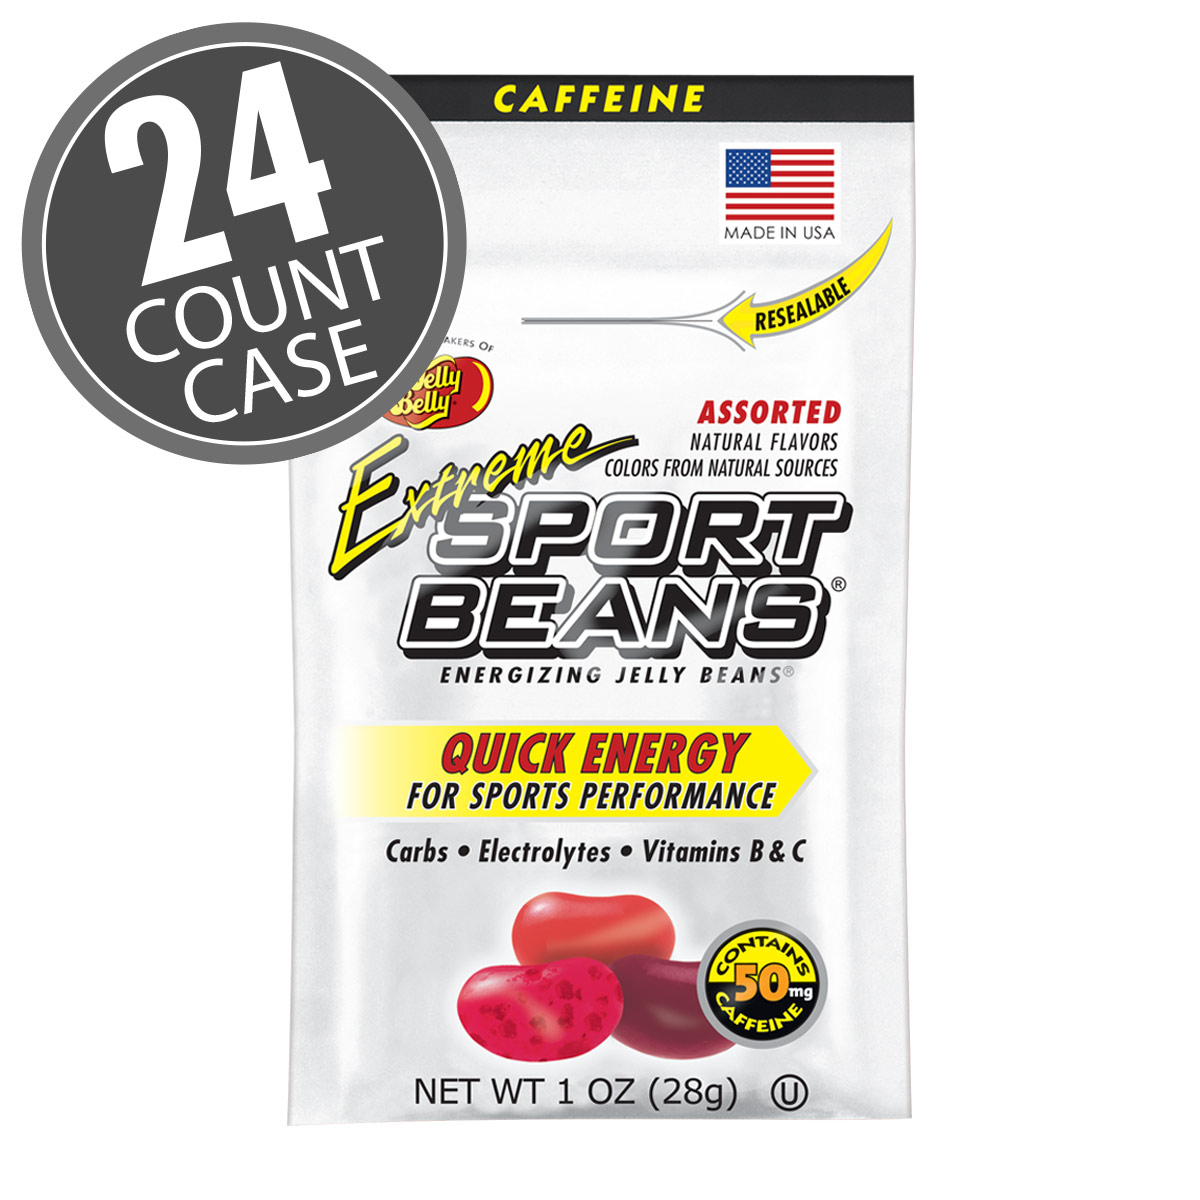 Extreme Sport Beans<sup>®</sup> Jelly Beans with CAFFEINE -  Assorted Flavors 24-Pack